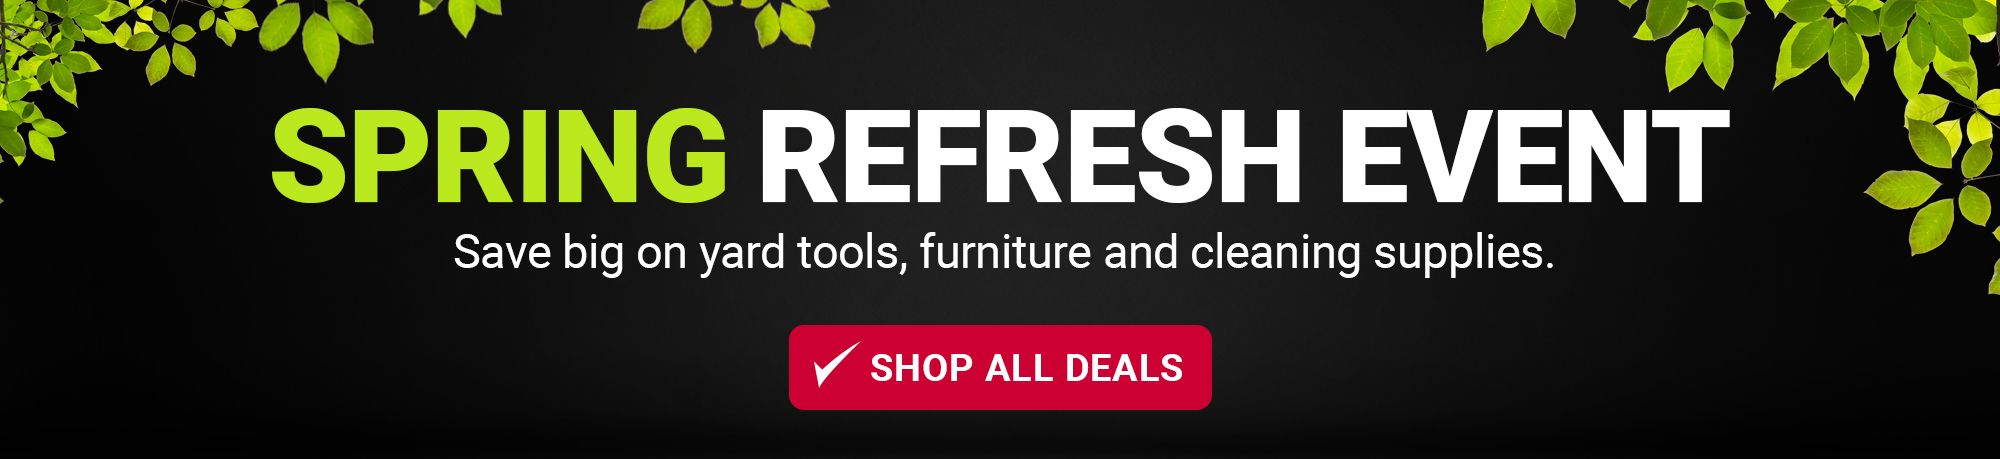 Spring refresh event. Save big on yard tools, furniture and cleaning supplies. Click to shop all deals.